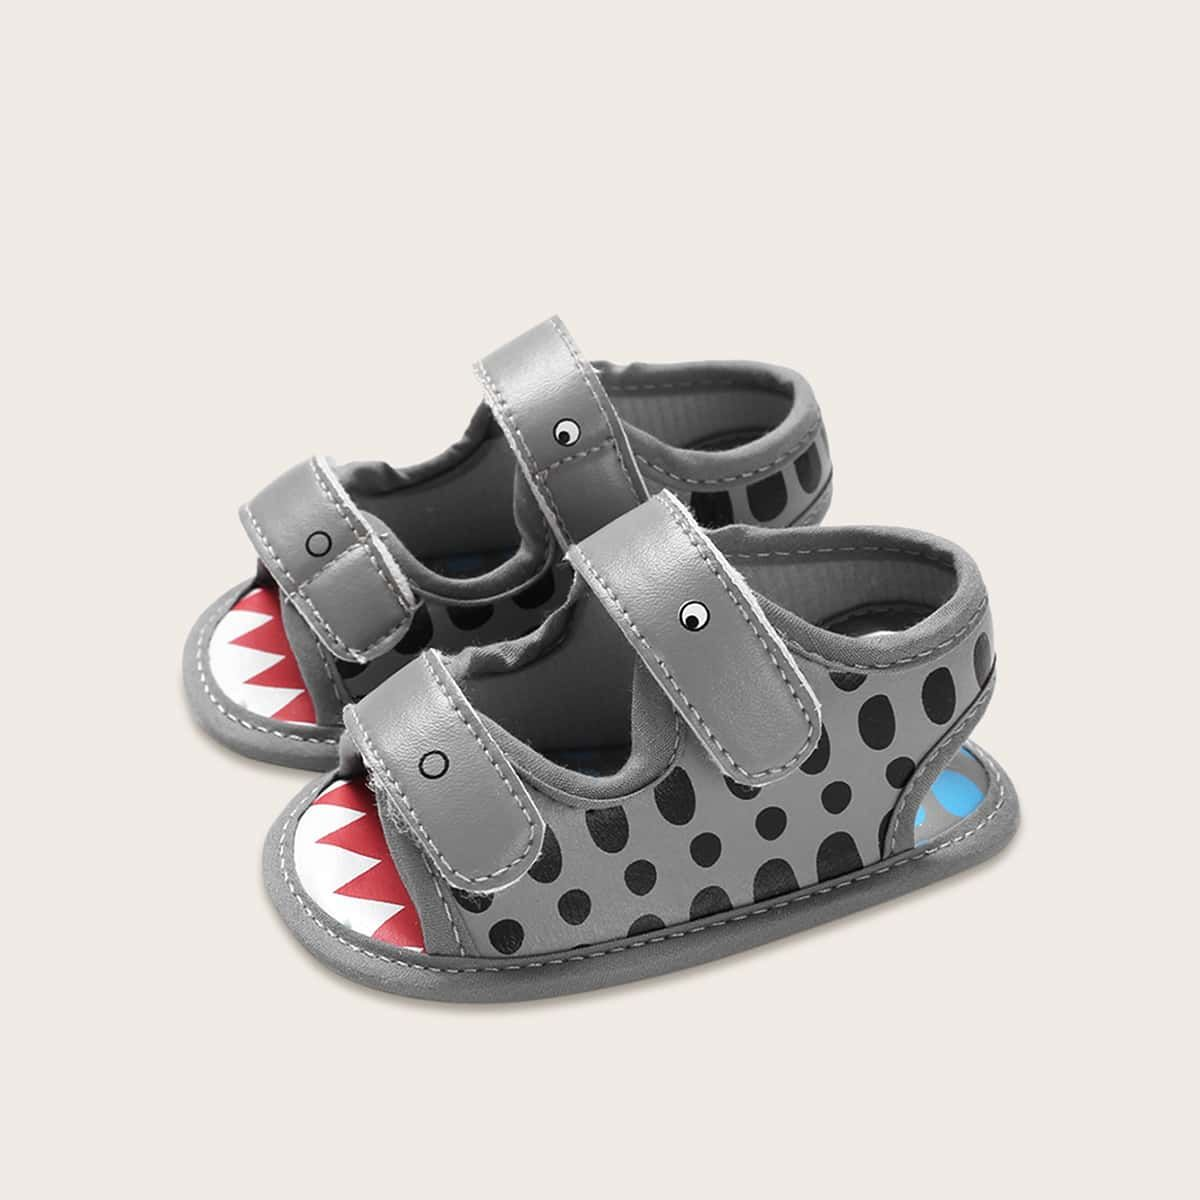 Baby Boy Cartoon Graphic Velcro Strap Sandals Grey Casual Cartoon Baby Sandals size features areBust Length Sleeve Length